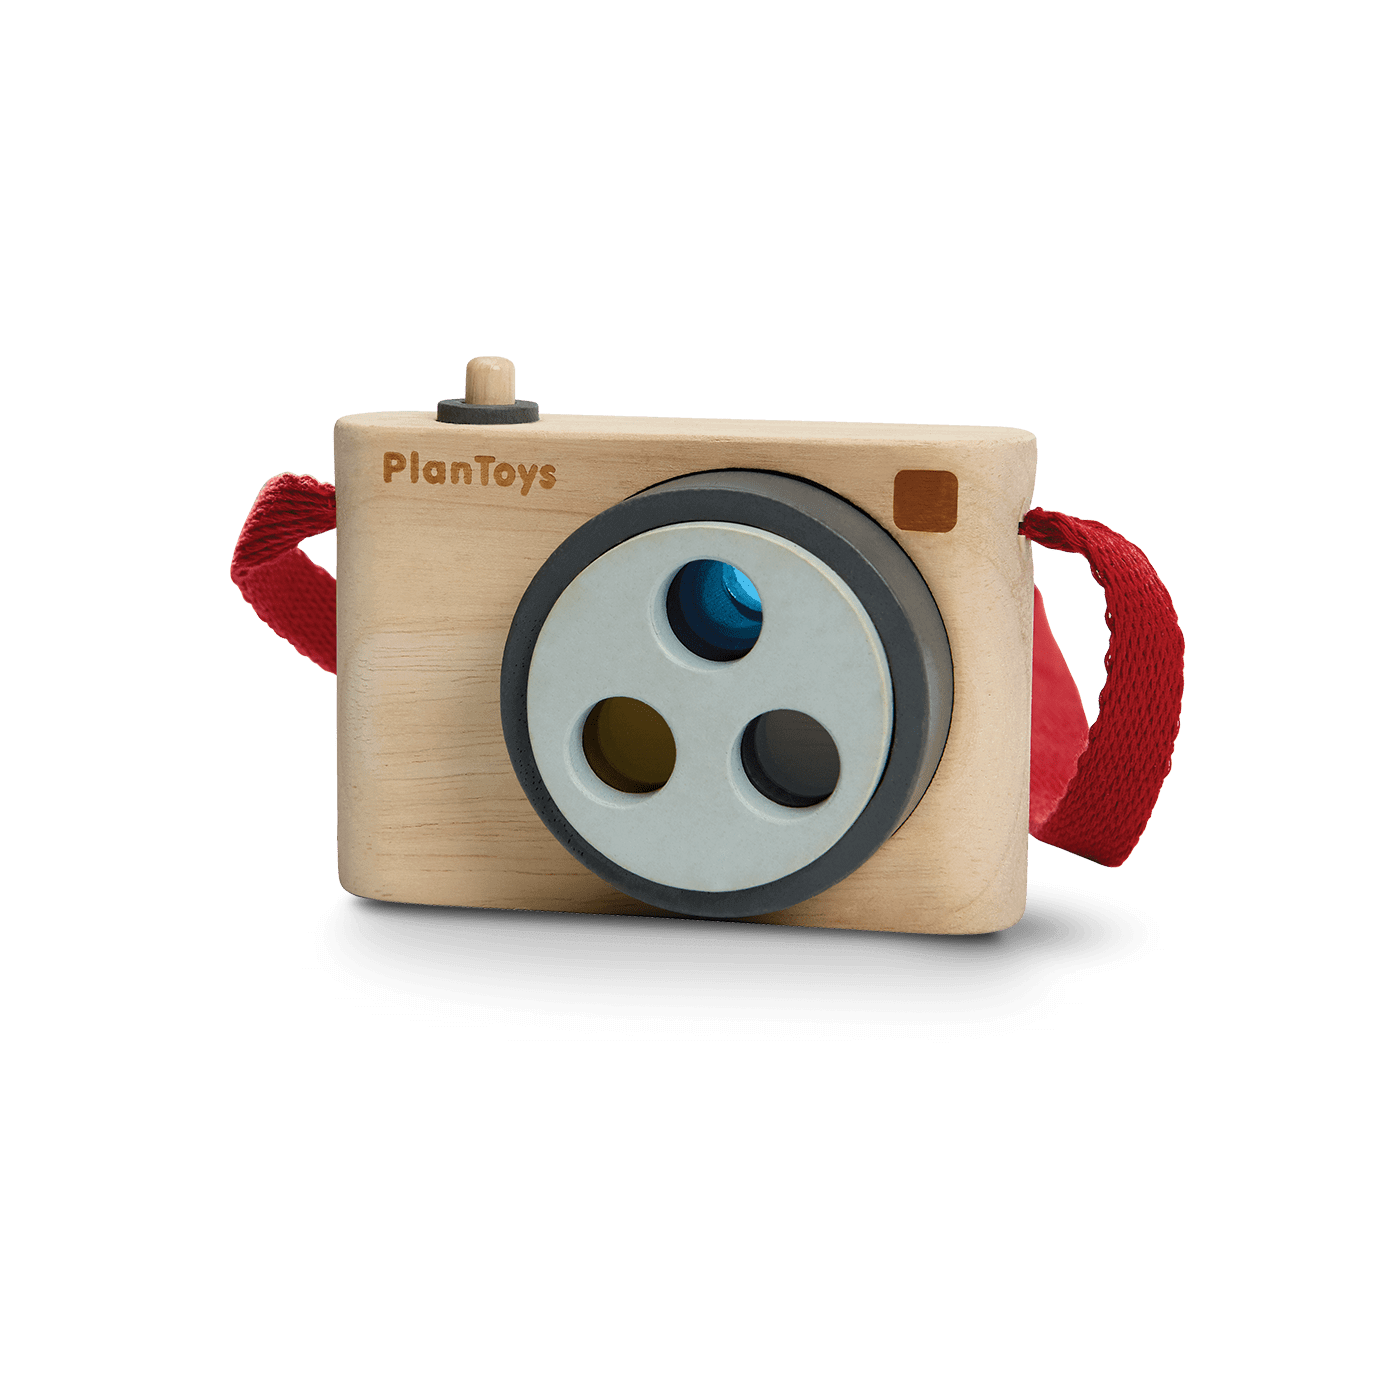 5450_PlanToys_COLORED_SNAP_CAMERA_Pretend_Play_Imagination_Coordination_Explore_Language_and_Communications_Social_3yrs_Wooden_toys_Education_toys_Safety_Toys_Non-toxic_0.png